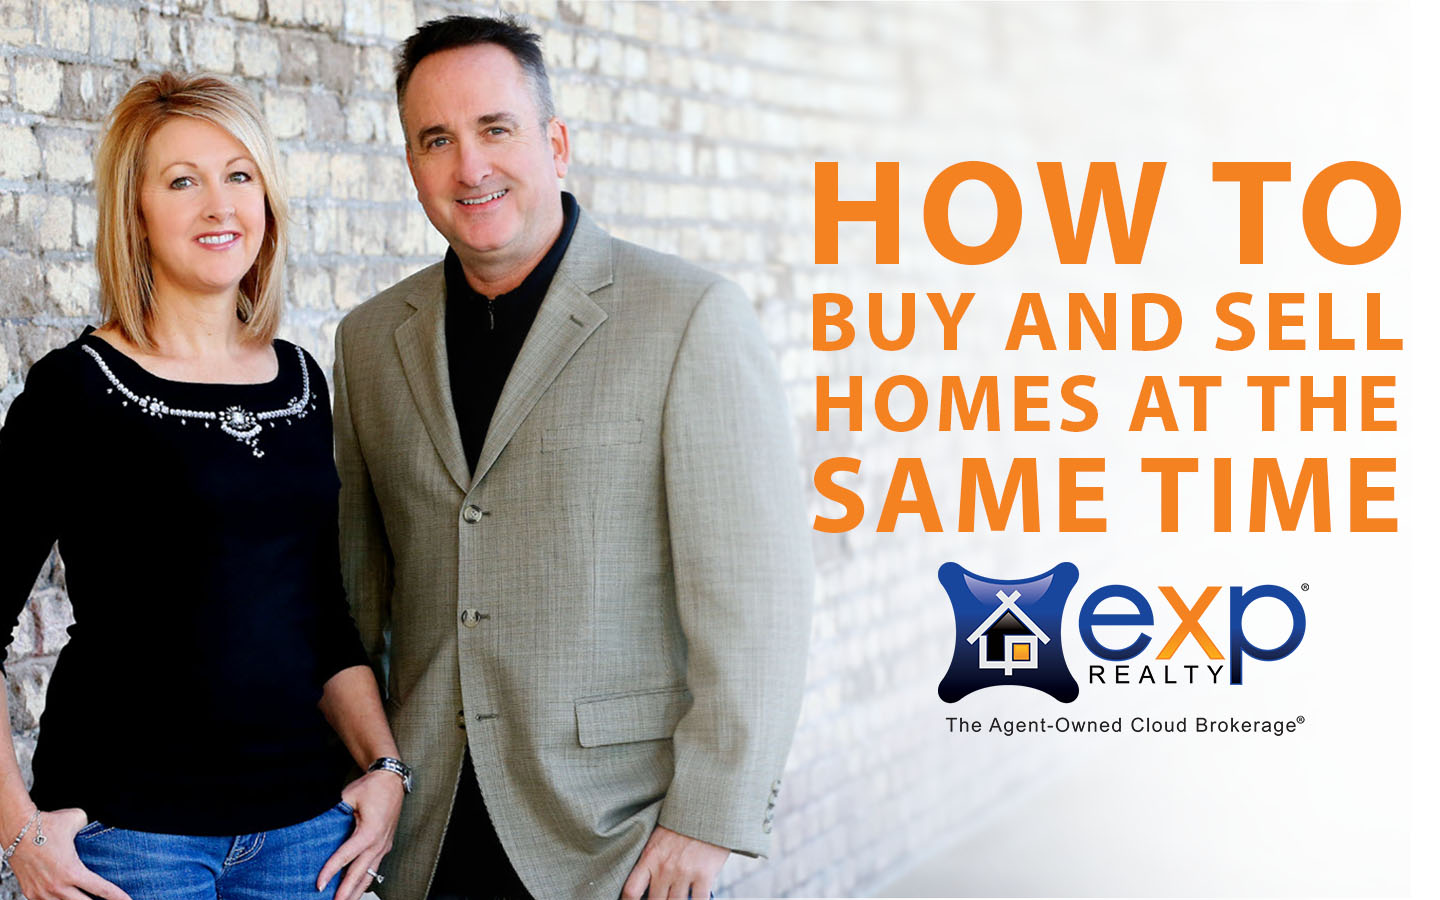 How to Simultaneously Buy and Sell Homes